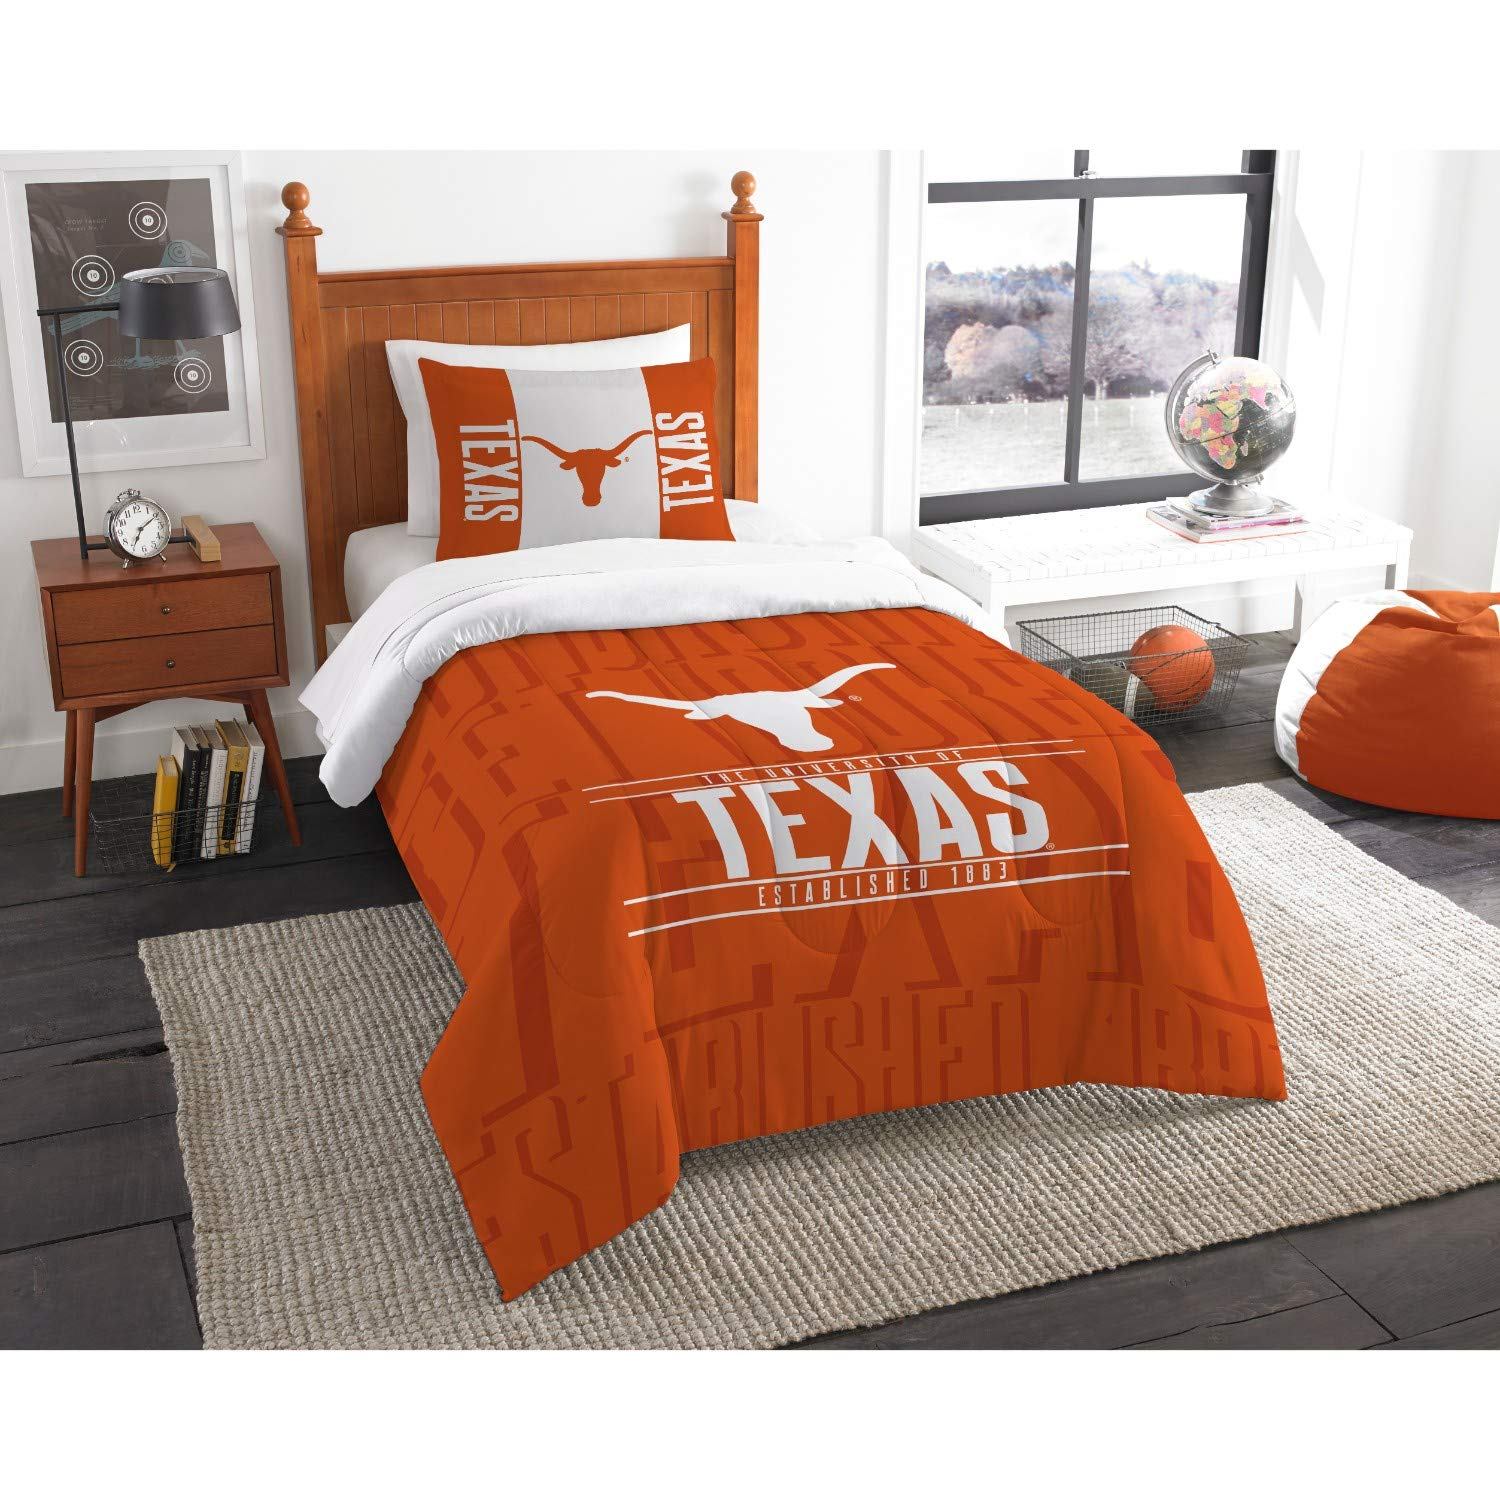 【限定製作】 Texas Longhorns Texas Longhorns B07F23L34K Twin Comforter Set [並行輸入品] B07F23L34K, 100%正規品:69f53b44 --- trainersnit-com.access.secure-ssl-servers.info